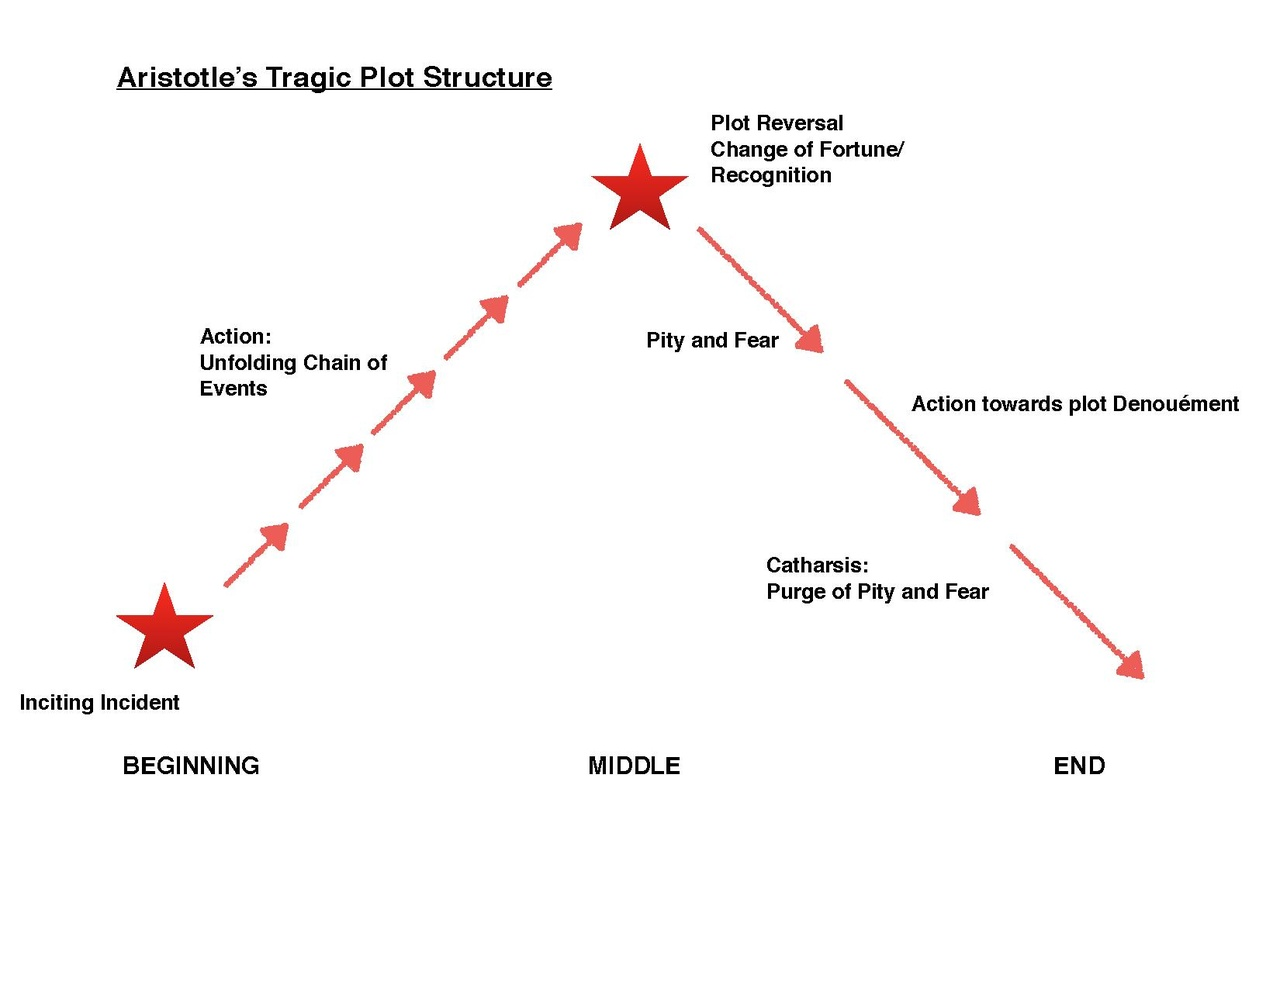 Aristotle's tragic plot structure